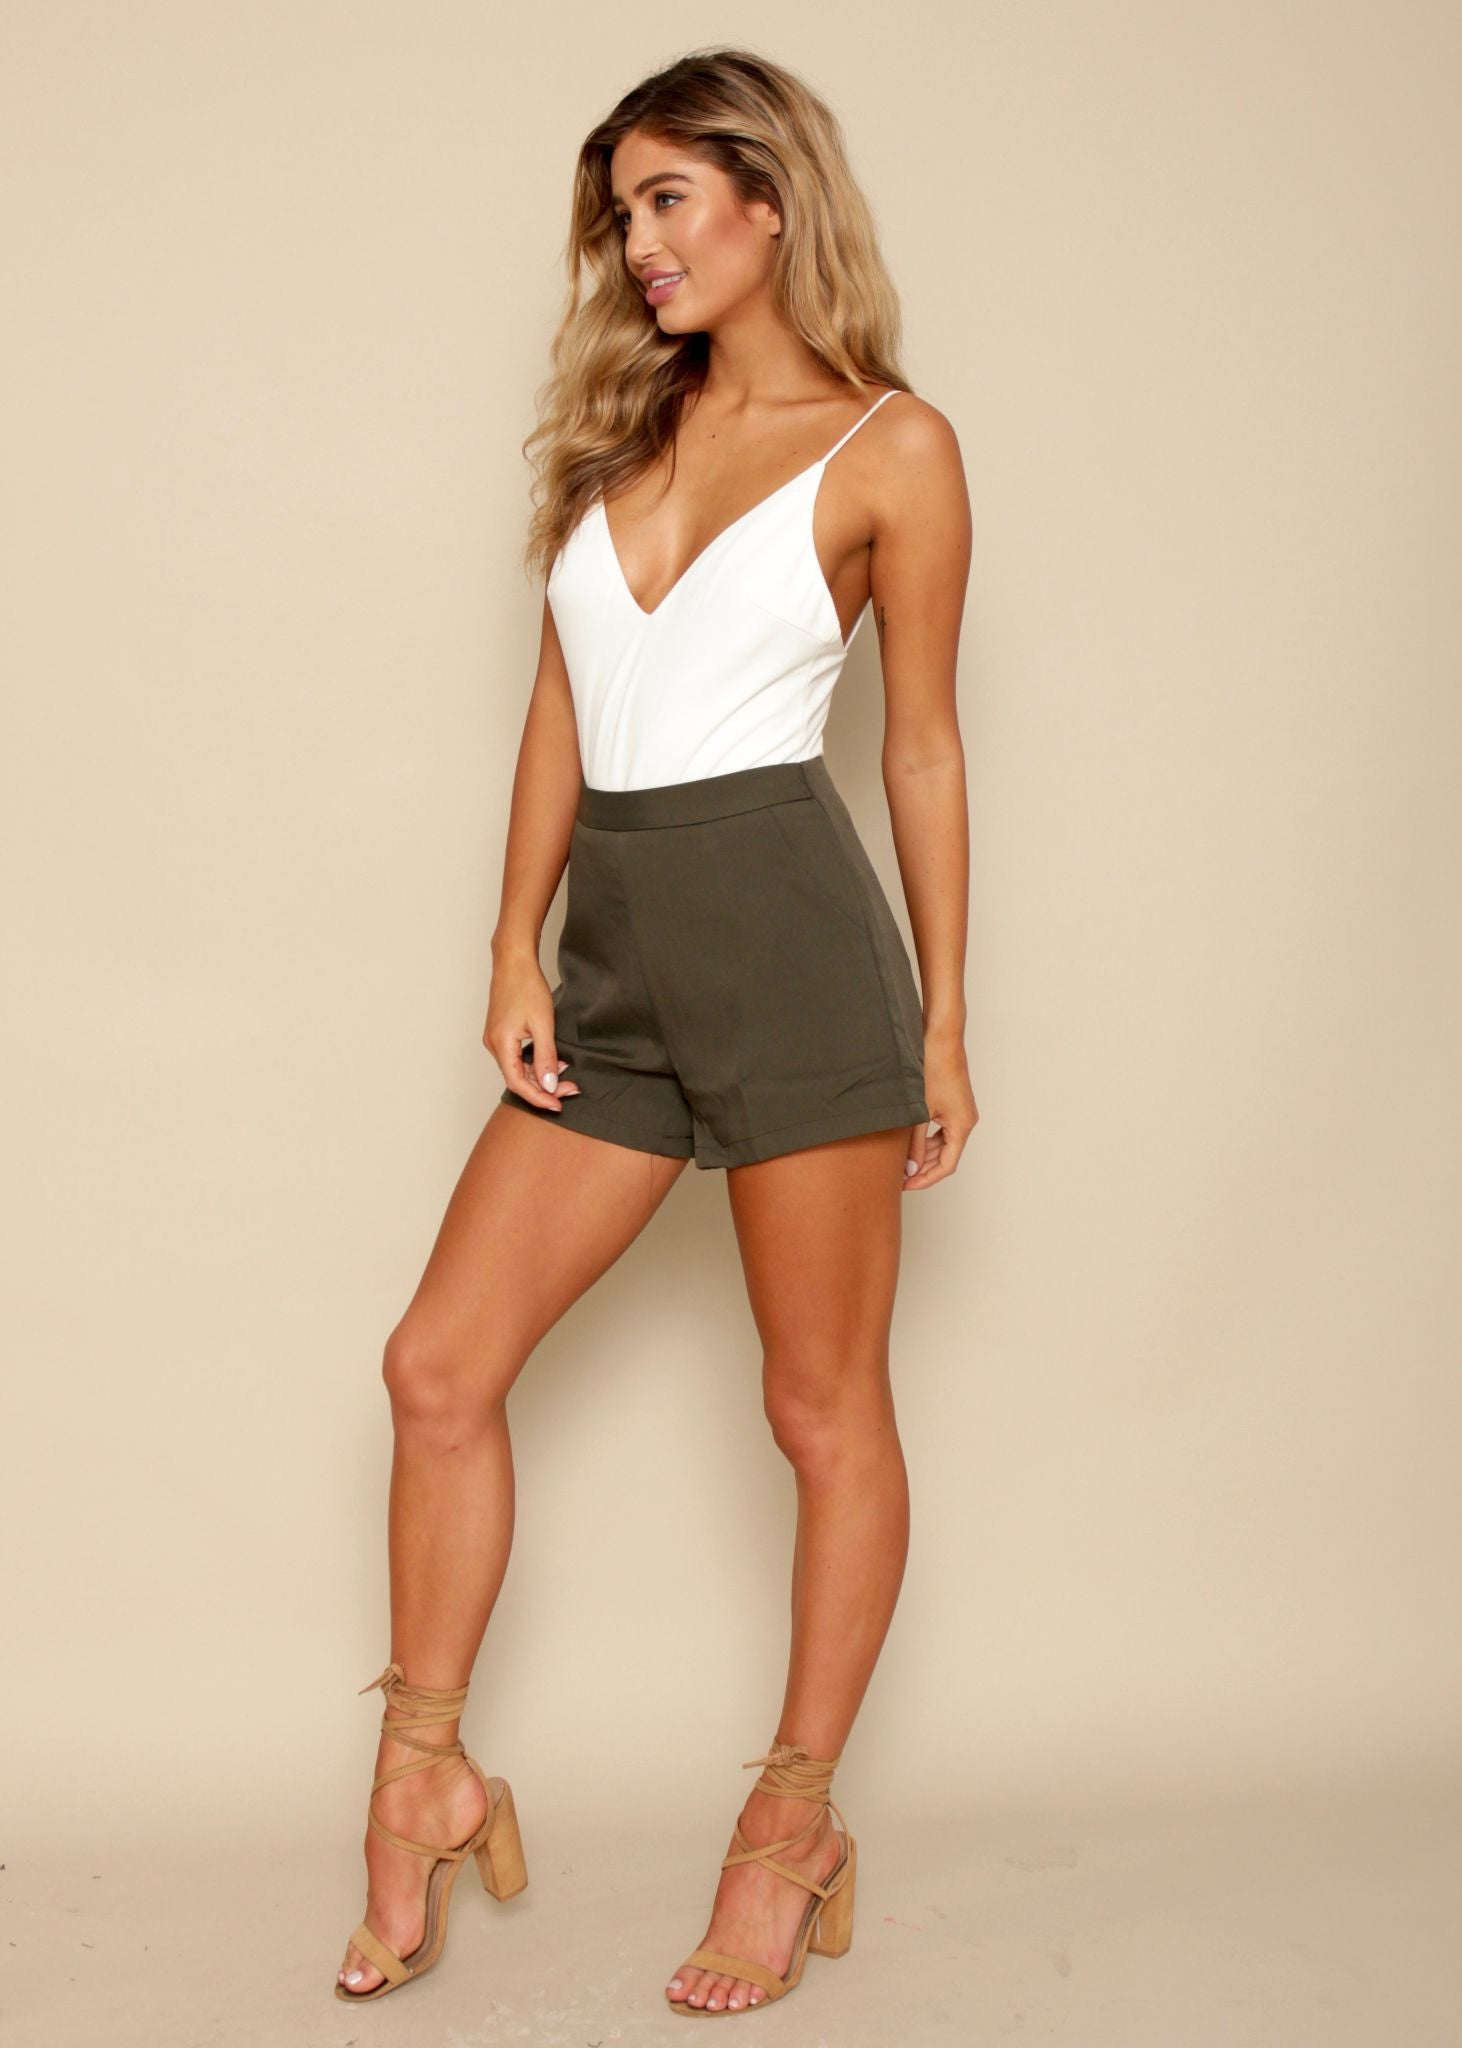 Lose Control Shorts - Khaki